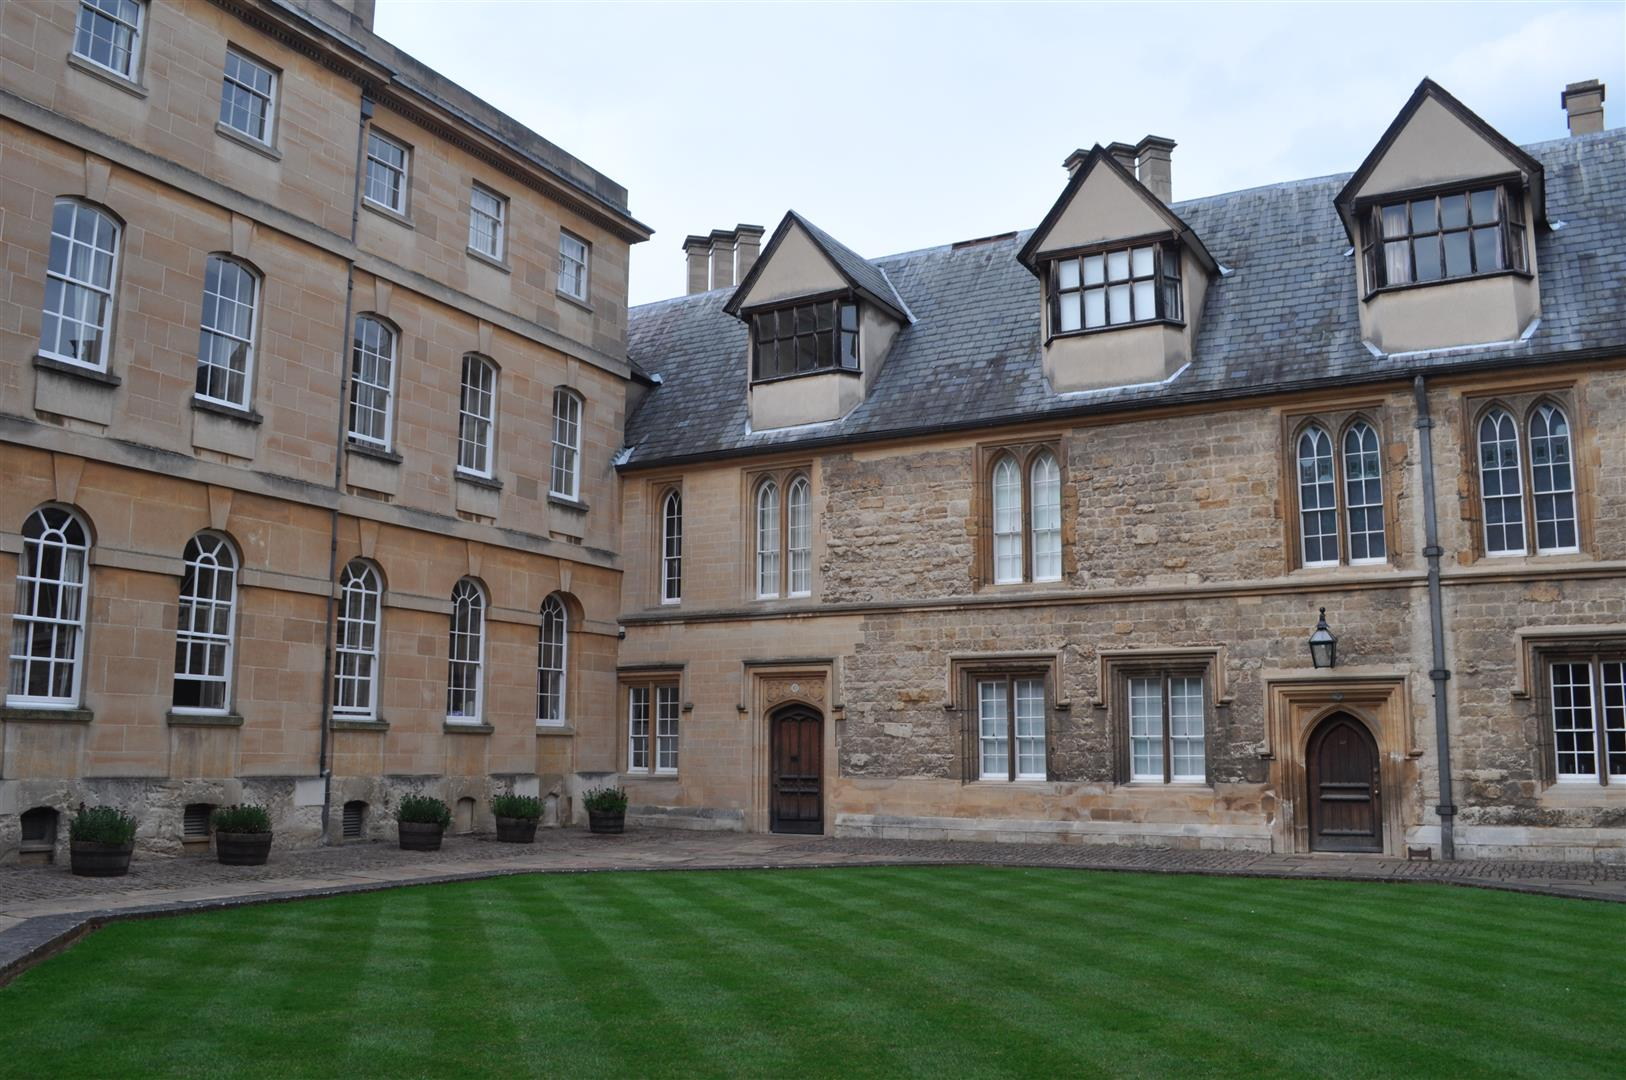 Trinity College 2, Oxford